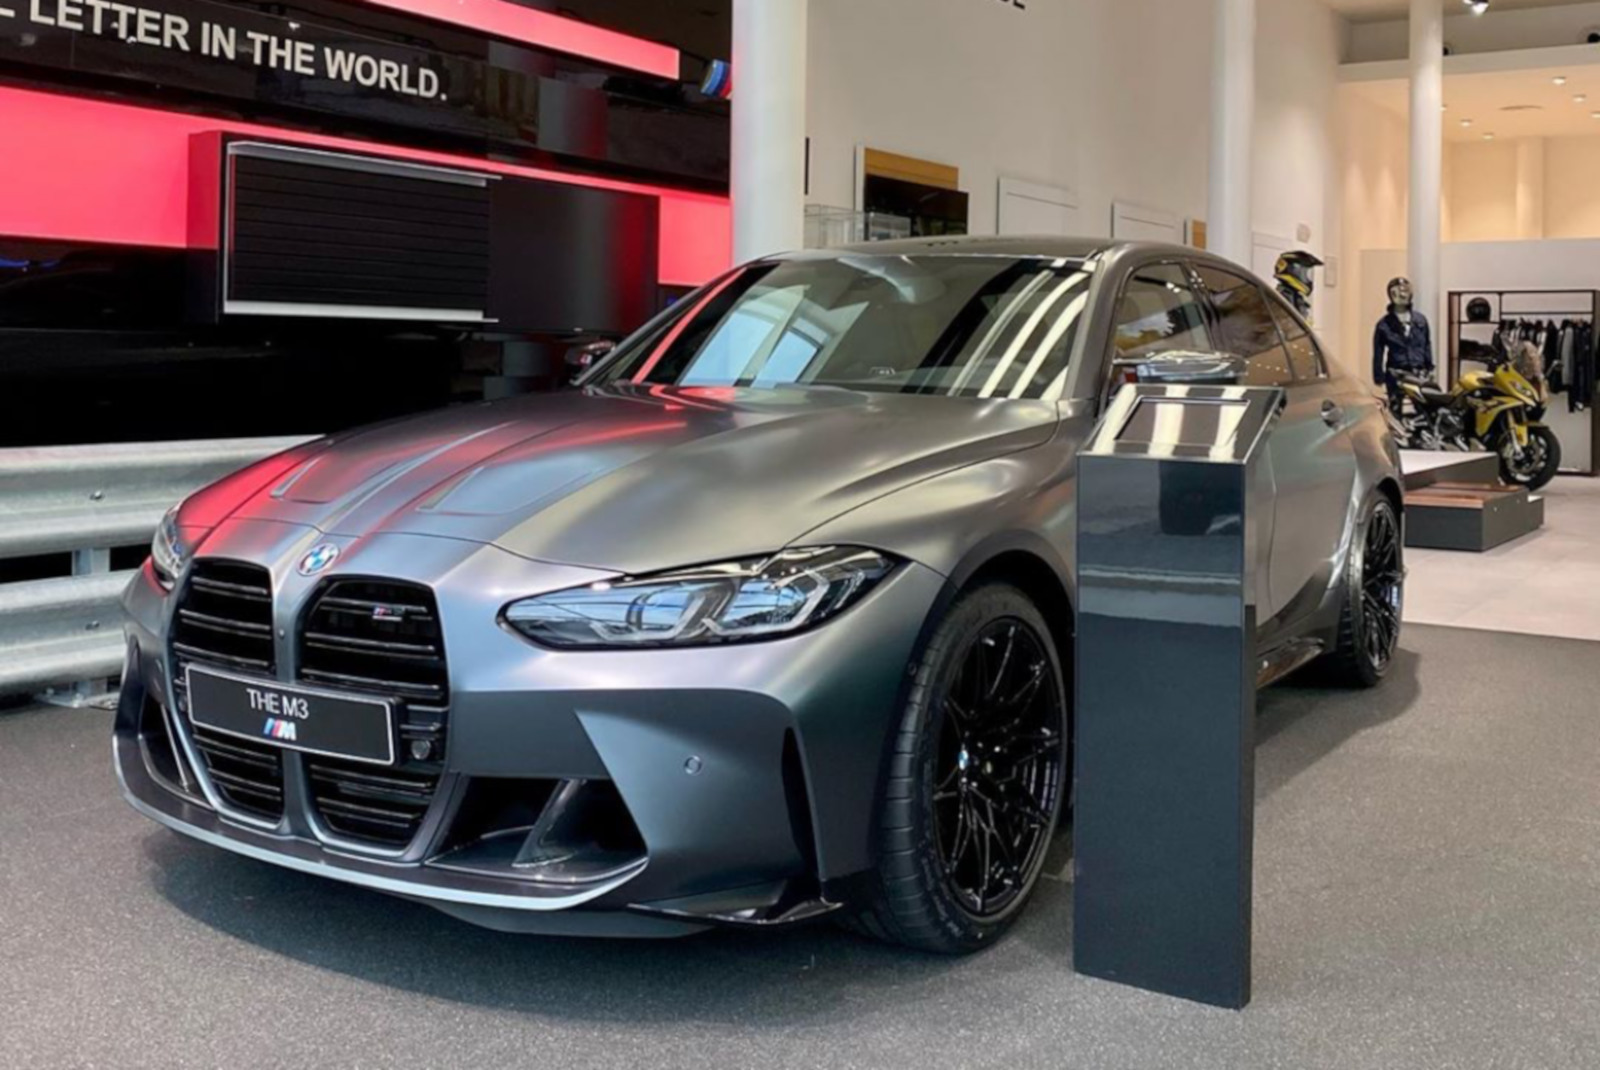 Bmw M3 Autodriverandroads Com Motor Sports Exotic Cars And Everything In Between